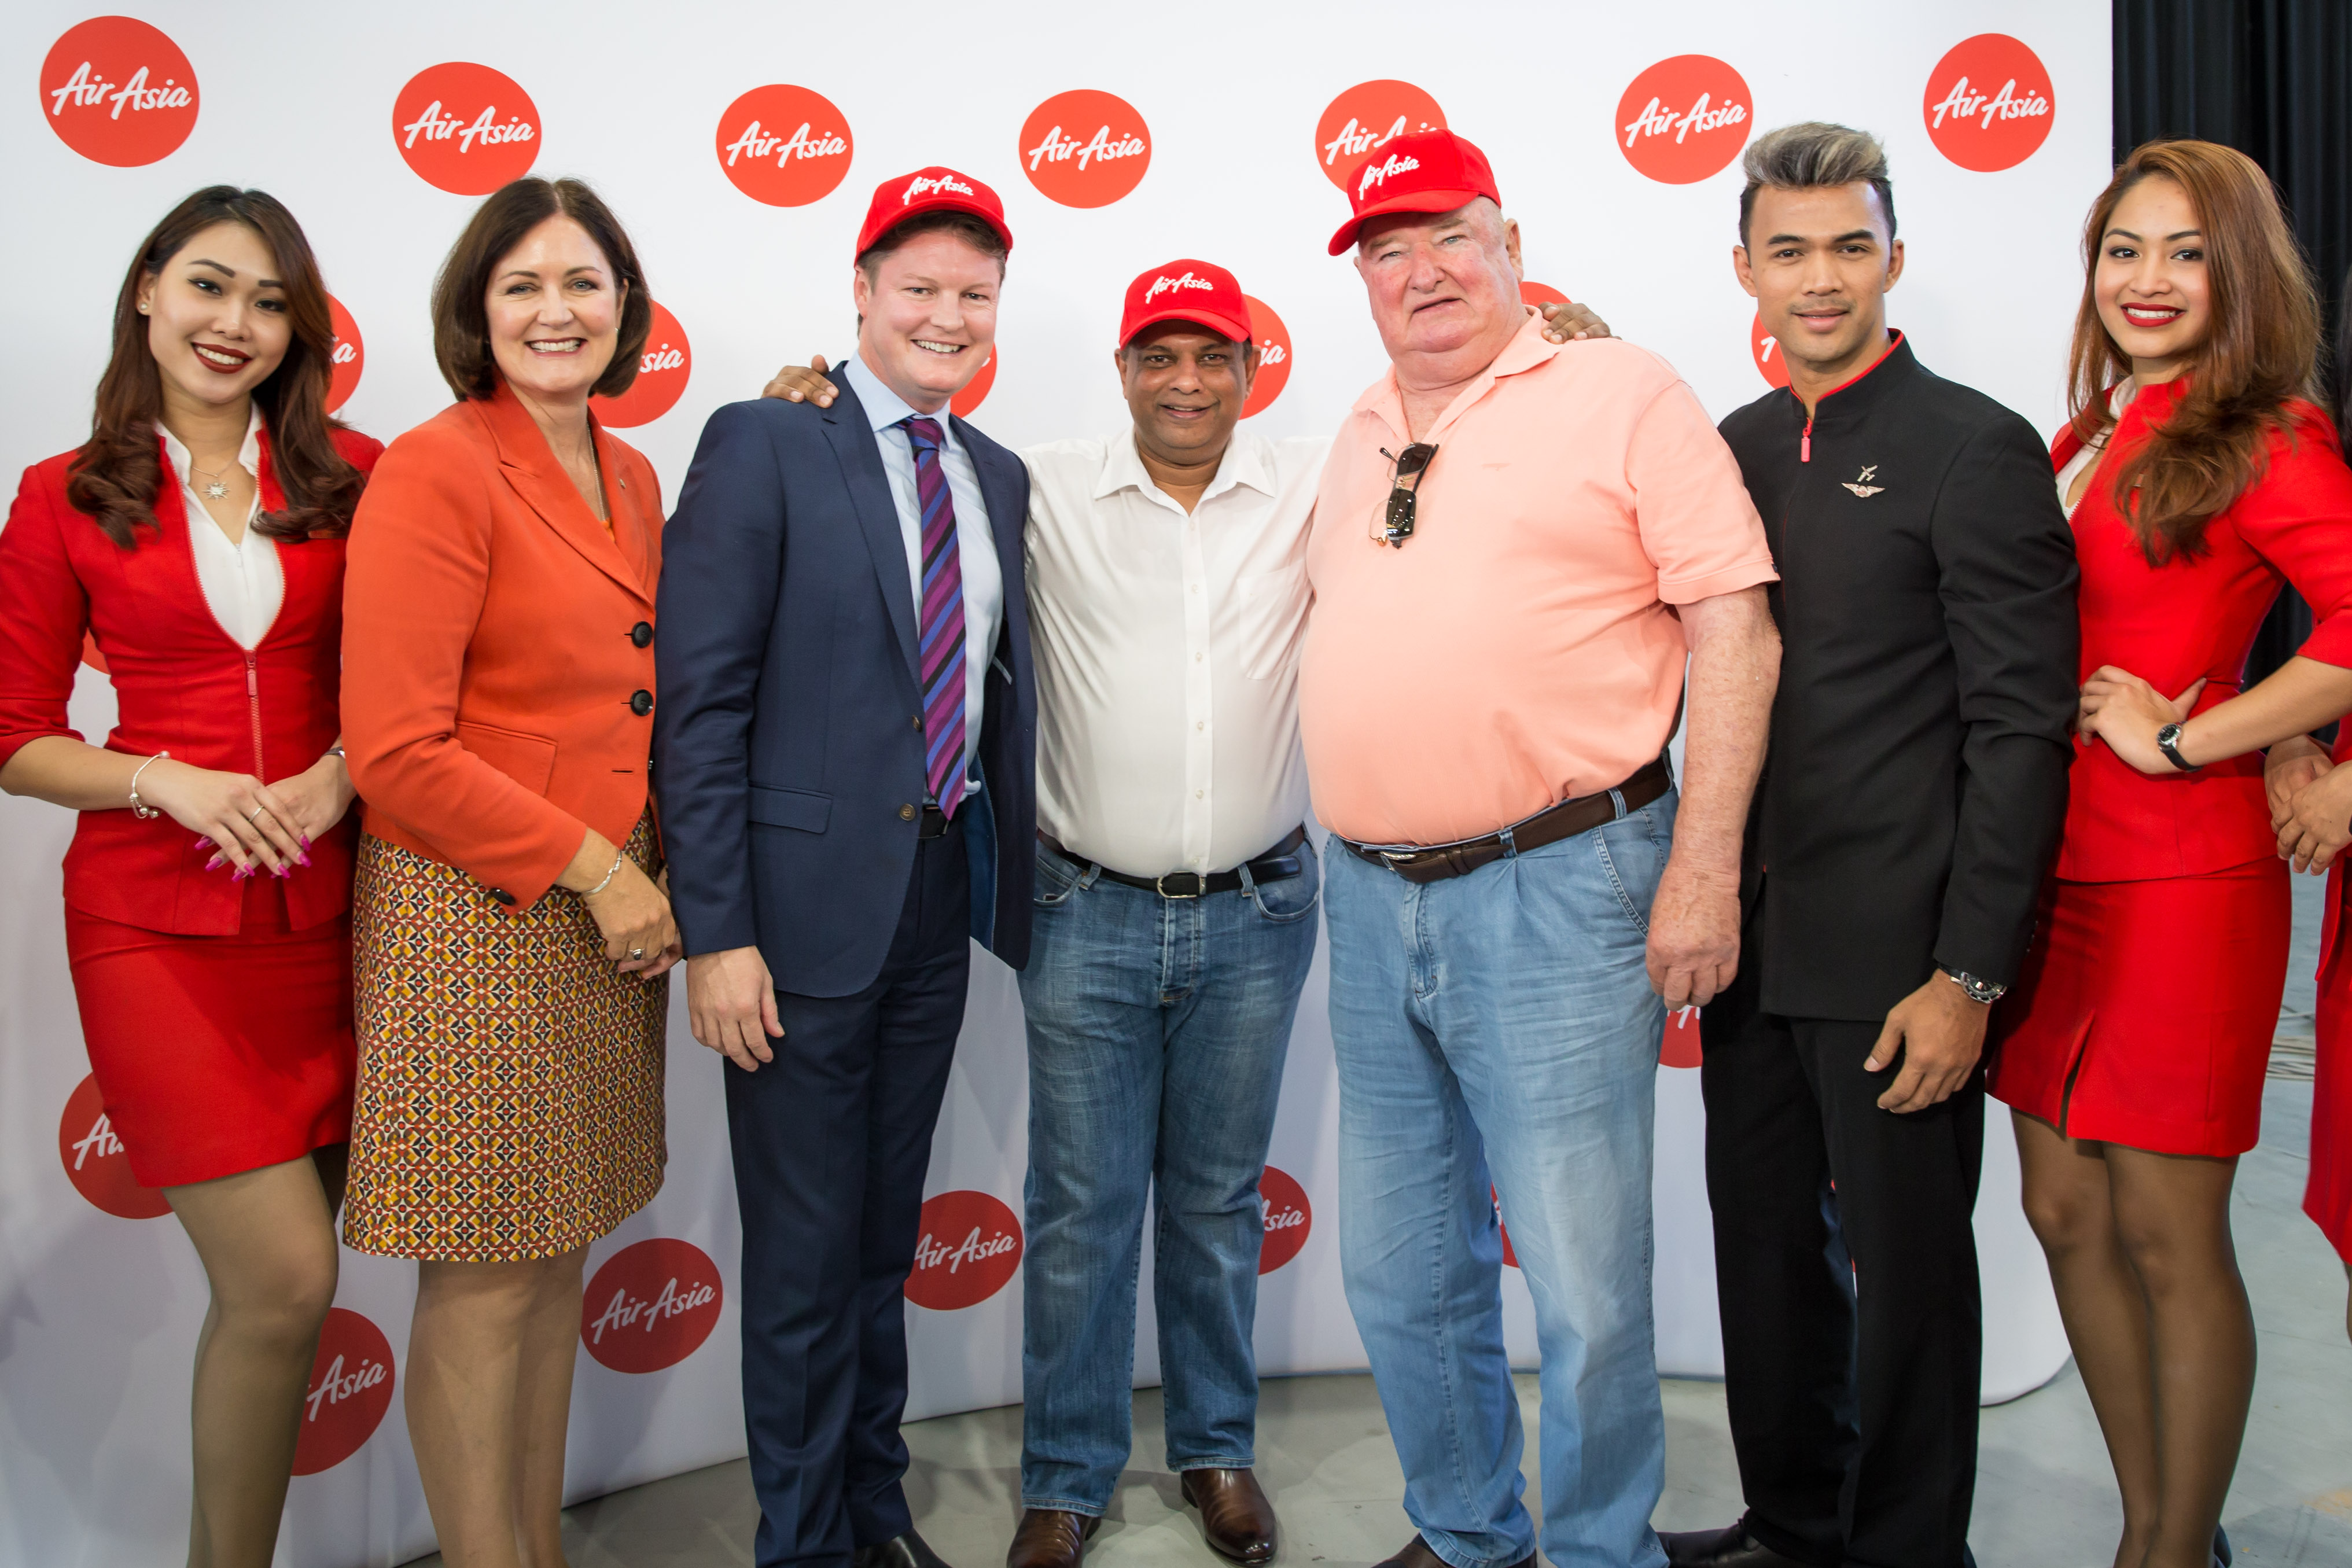 Avalon Airport AirAsia Launch